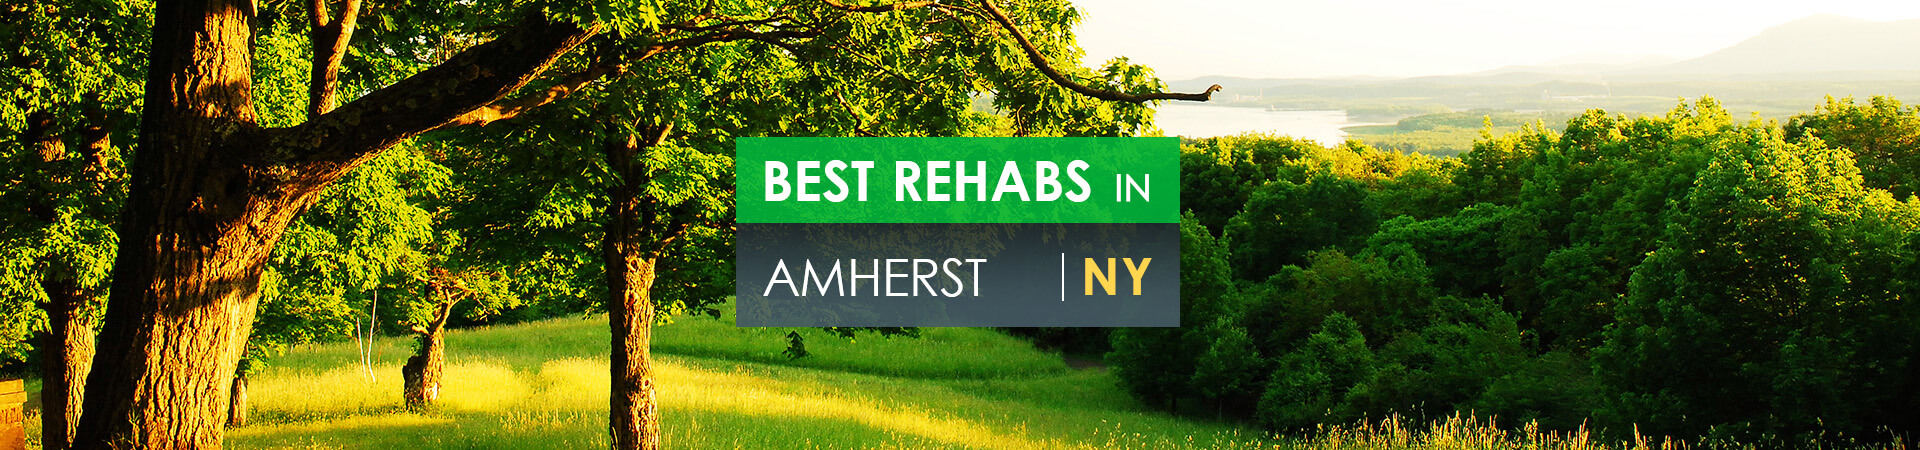 Best rehabs in Amherst, NY